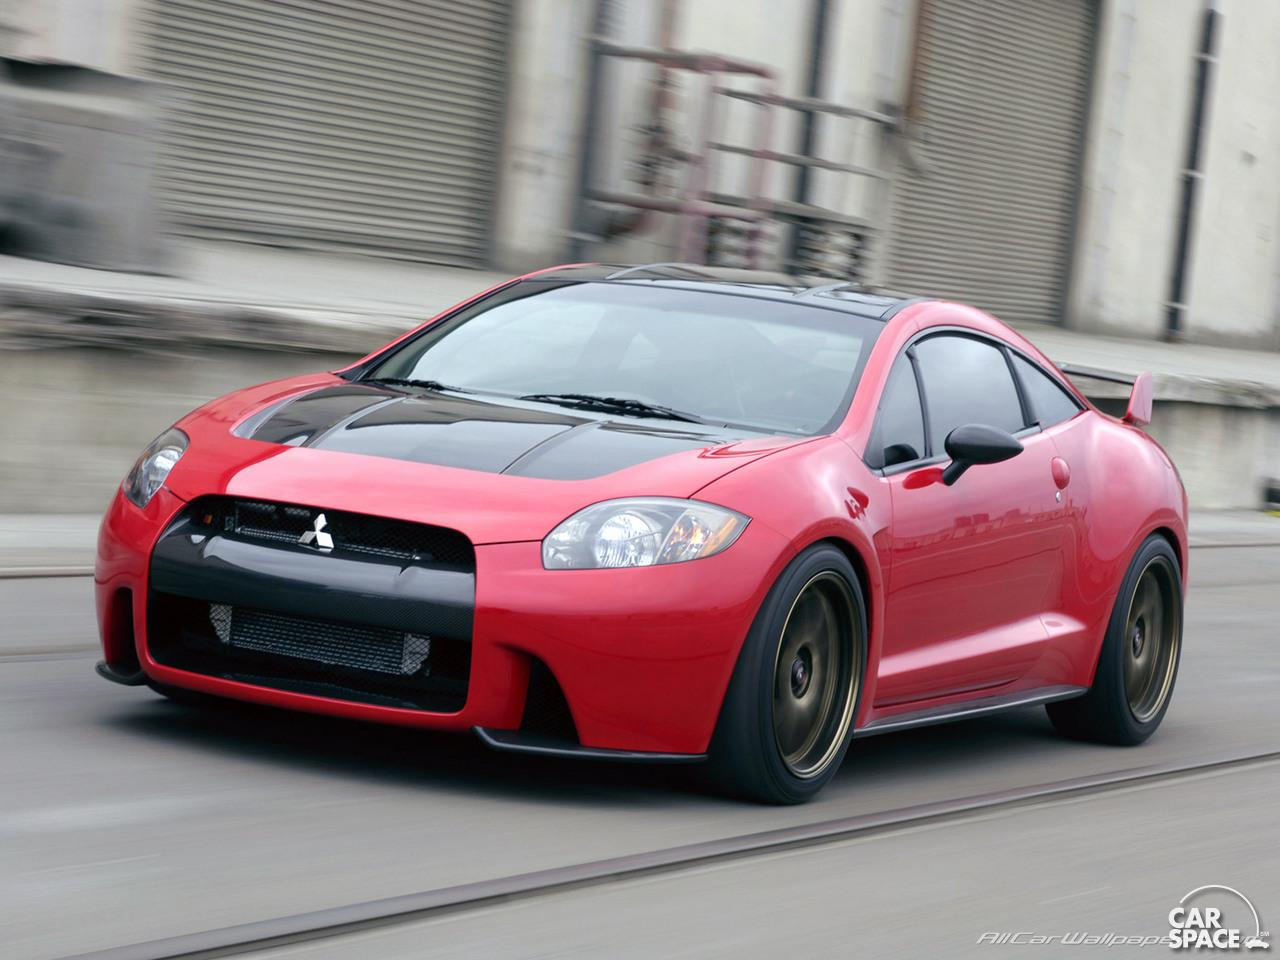 Mitsubishi Eclipse - Sports Cars Photo (268900) - Fanpop